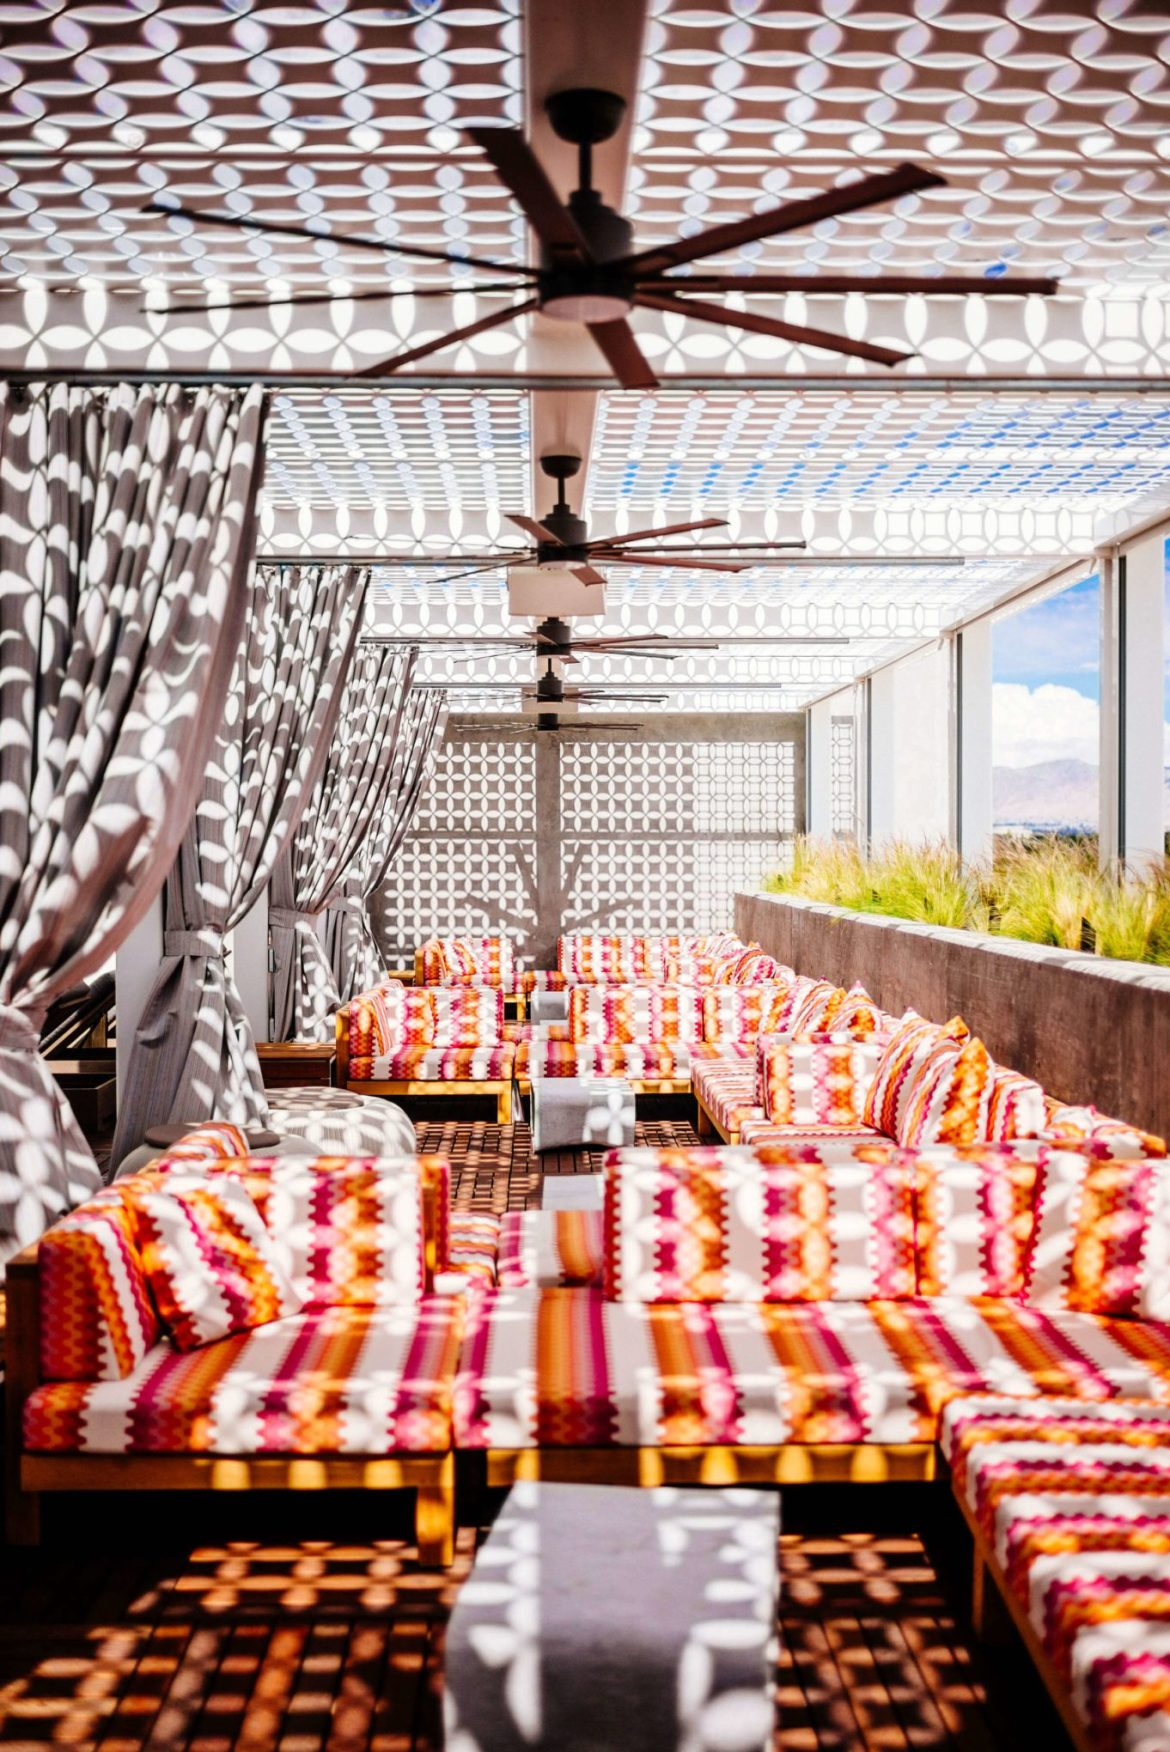 Stay at the Kimpton Rowan Hotel in Palm Springs has one of the best rooftop patios in Palm Springs, it's a dessert retreat, The Taste Edit